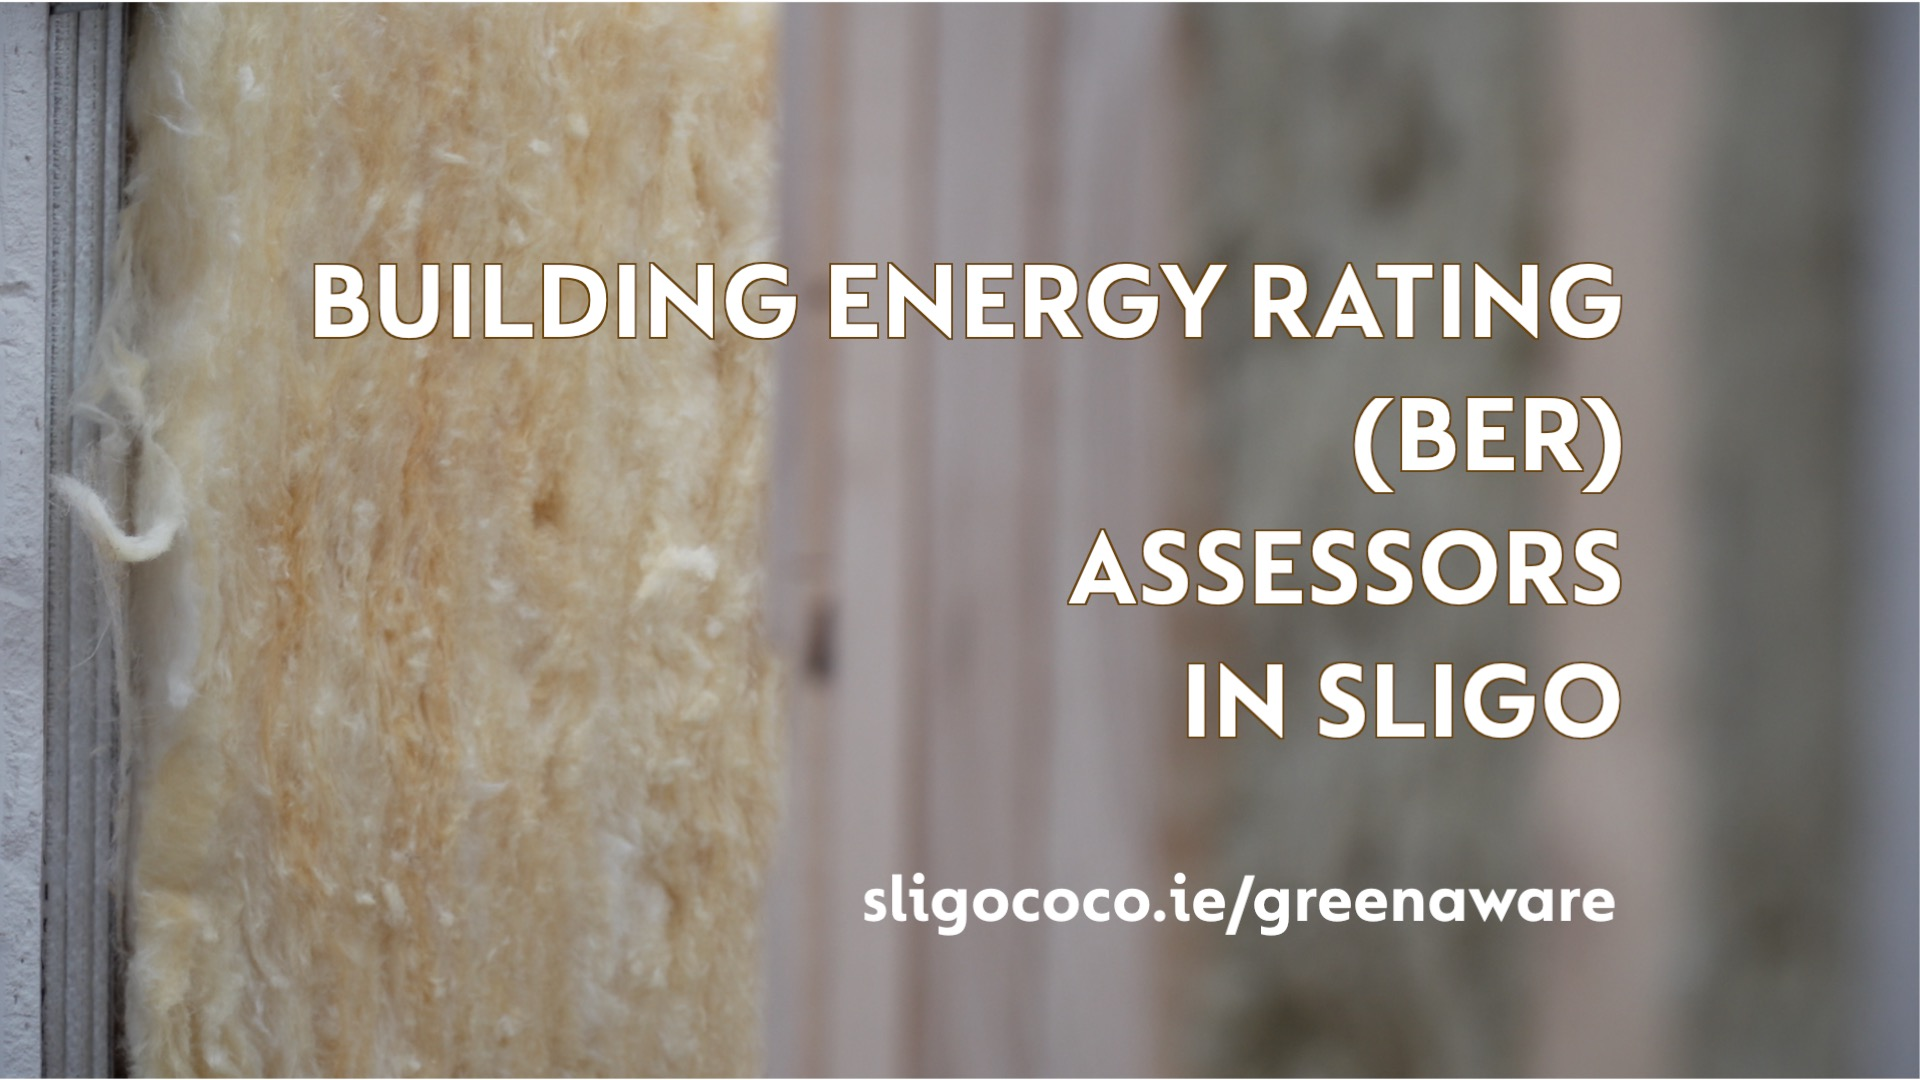 BER Assessment in Sligo